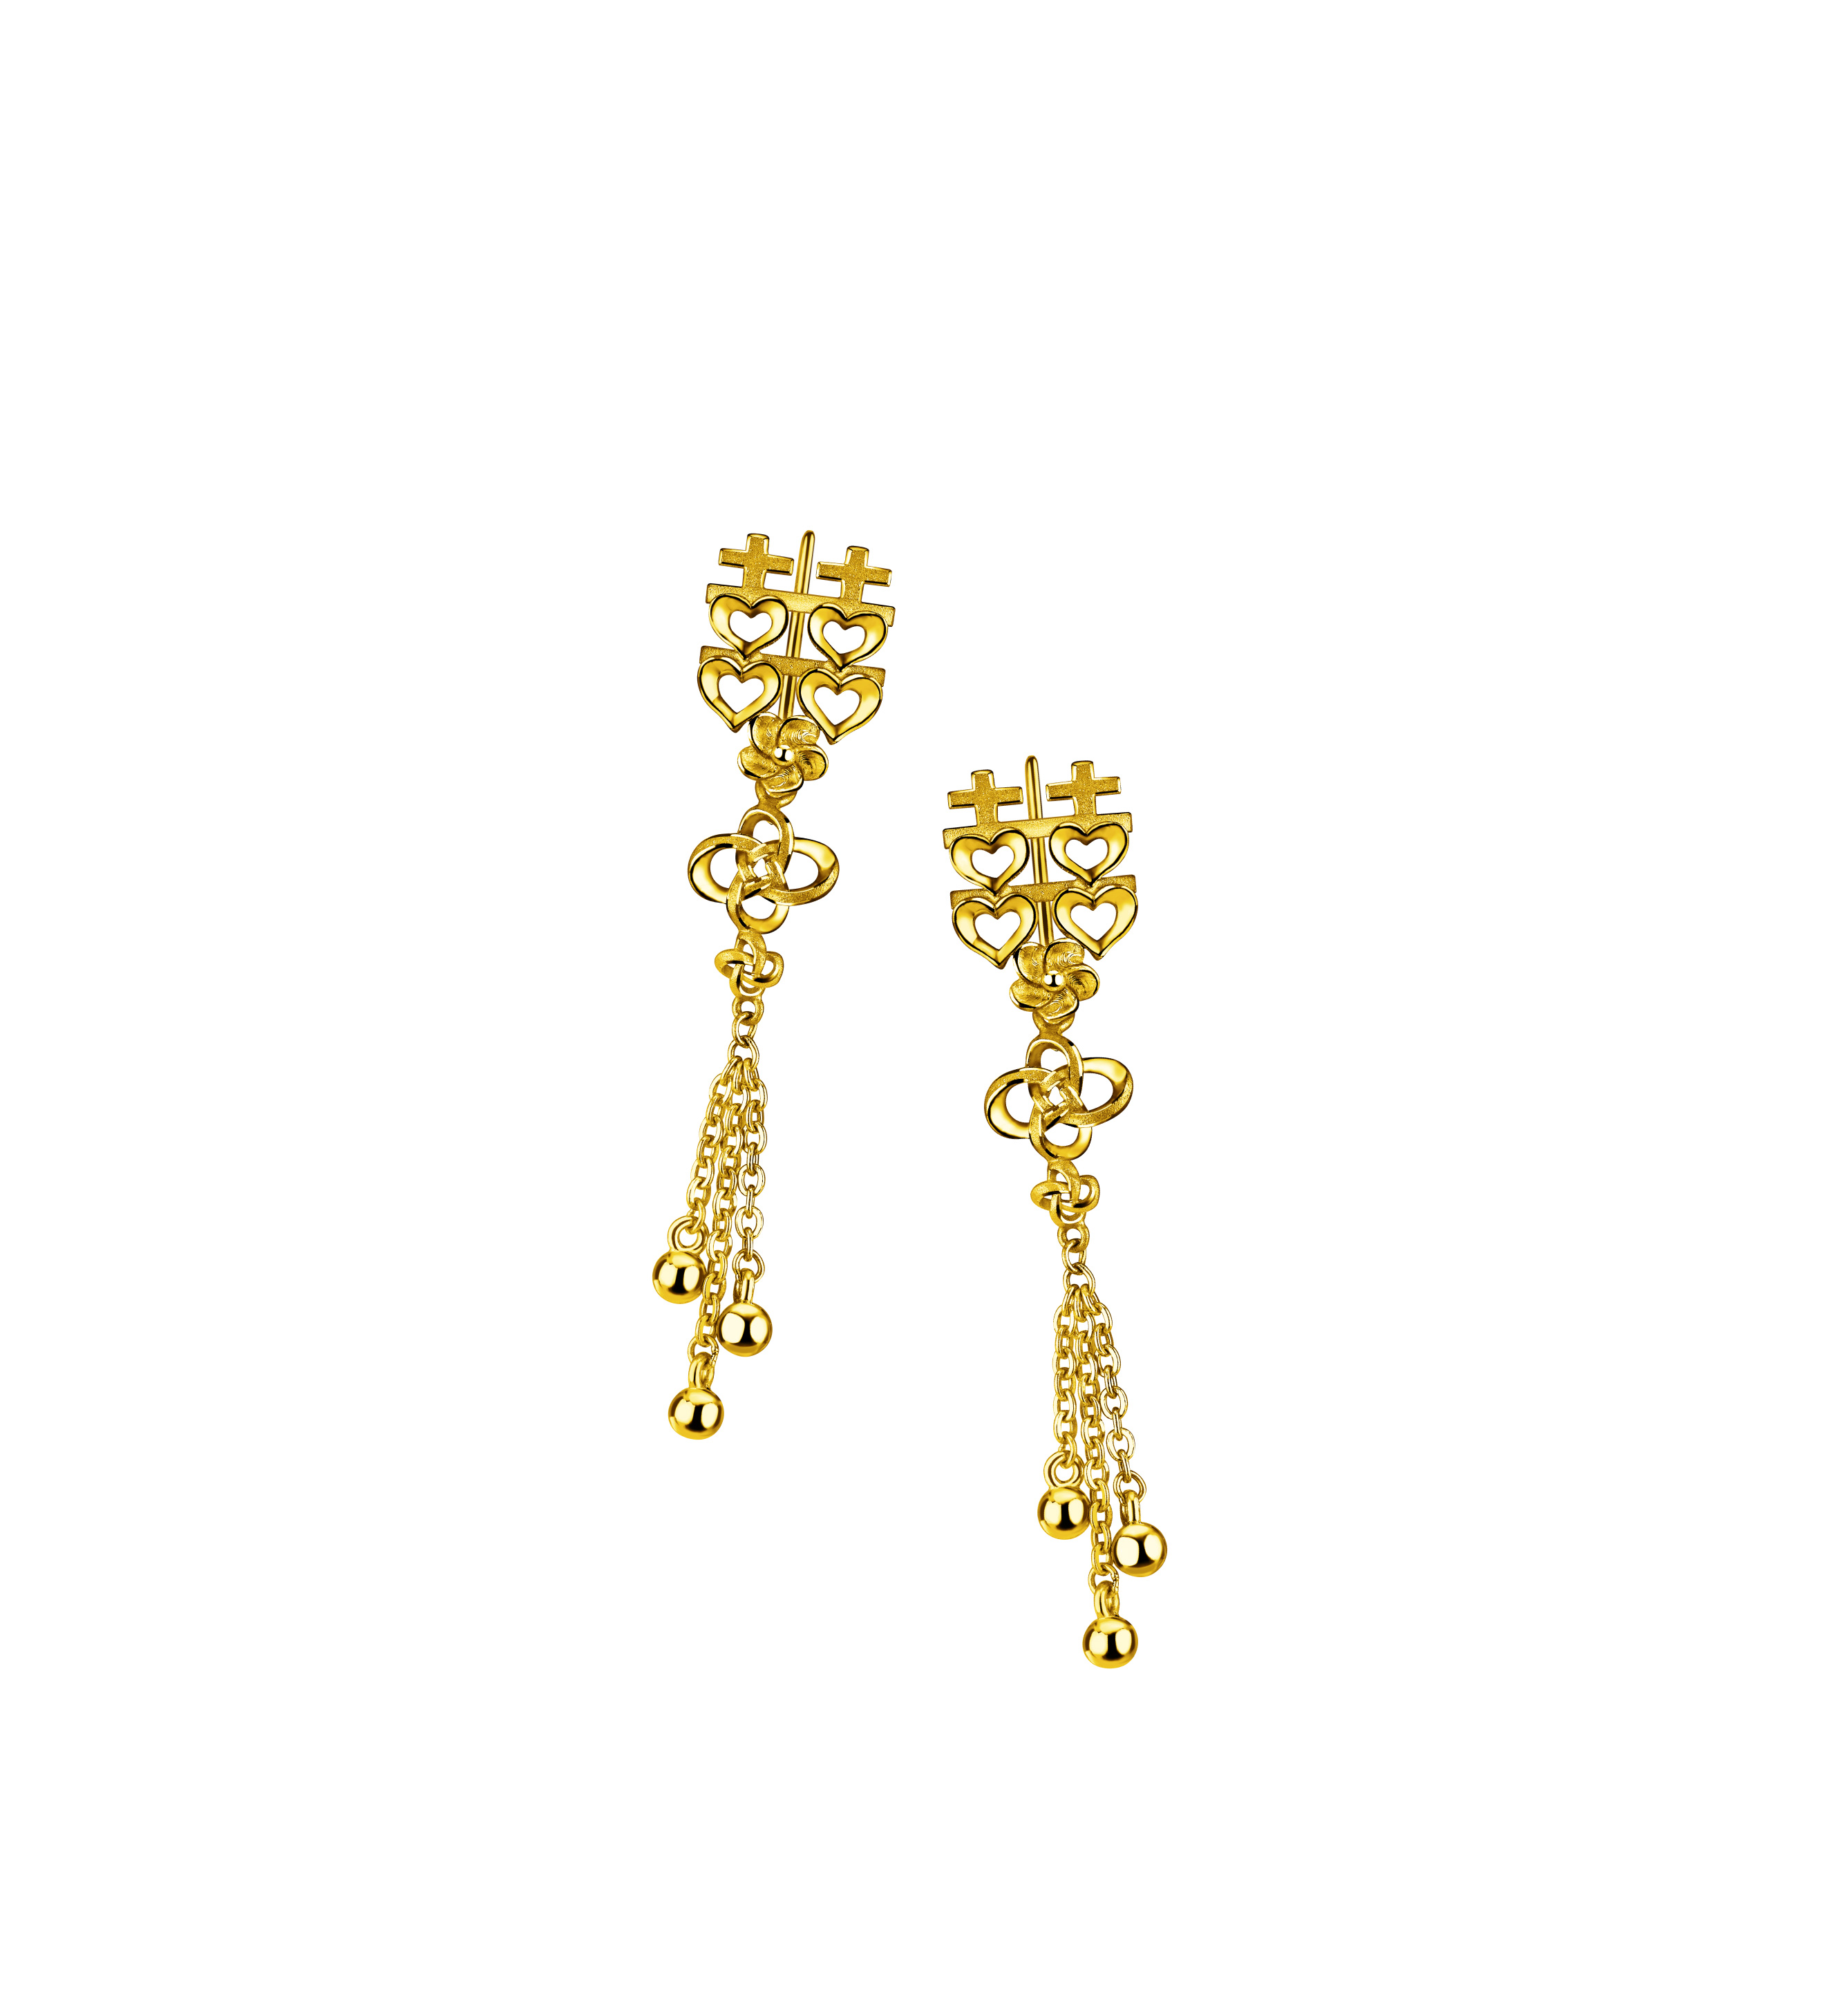 Beloved Collection Blissful Union Earrings